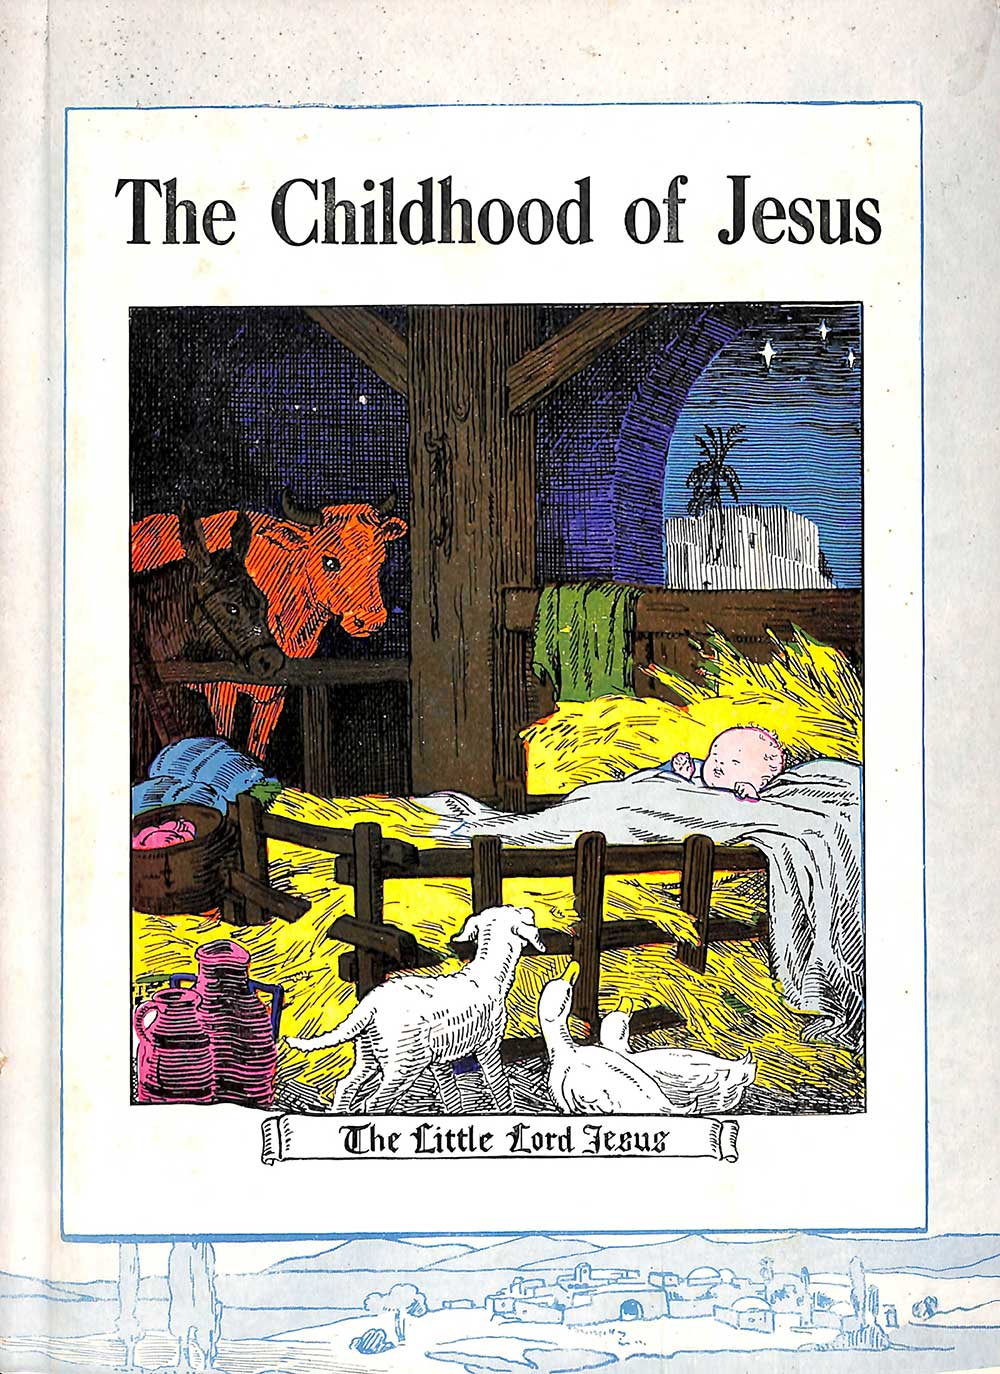 A.W. Reed. <em>The childhood of Jesus.</em> Wellington: A.H. & A.W. Reed, 1947.